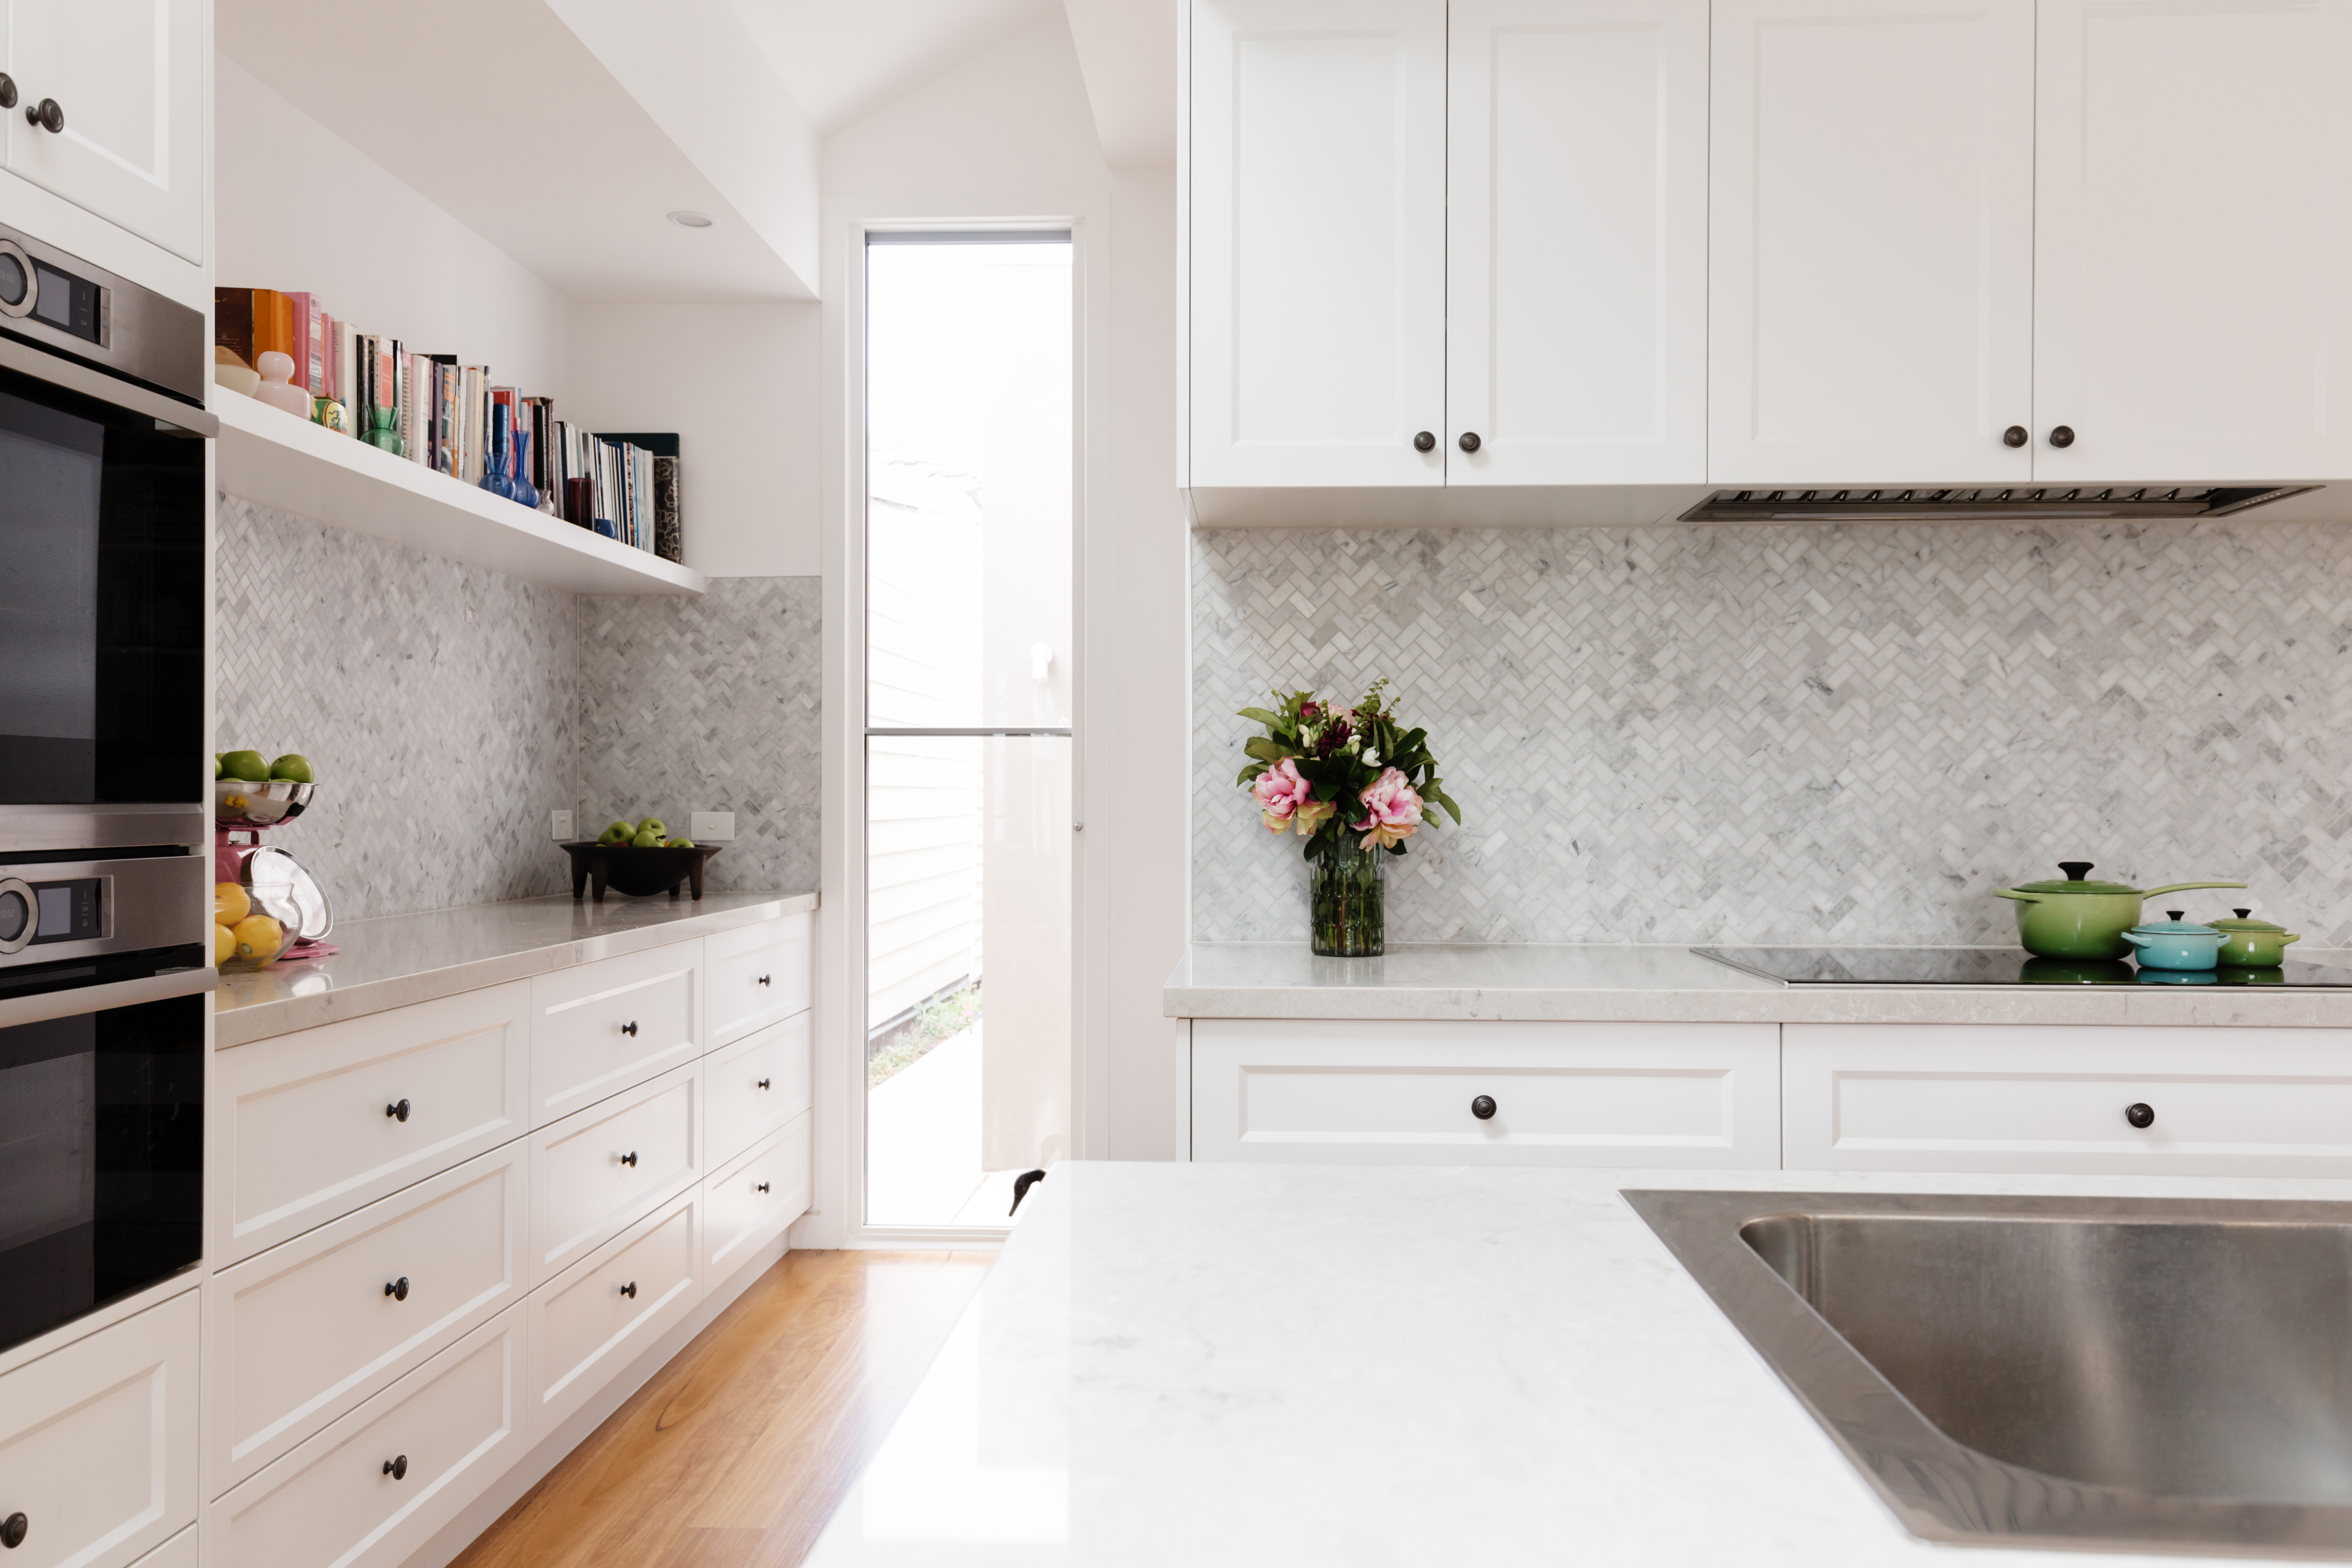 - Standard Backsplash Height Hunker